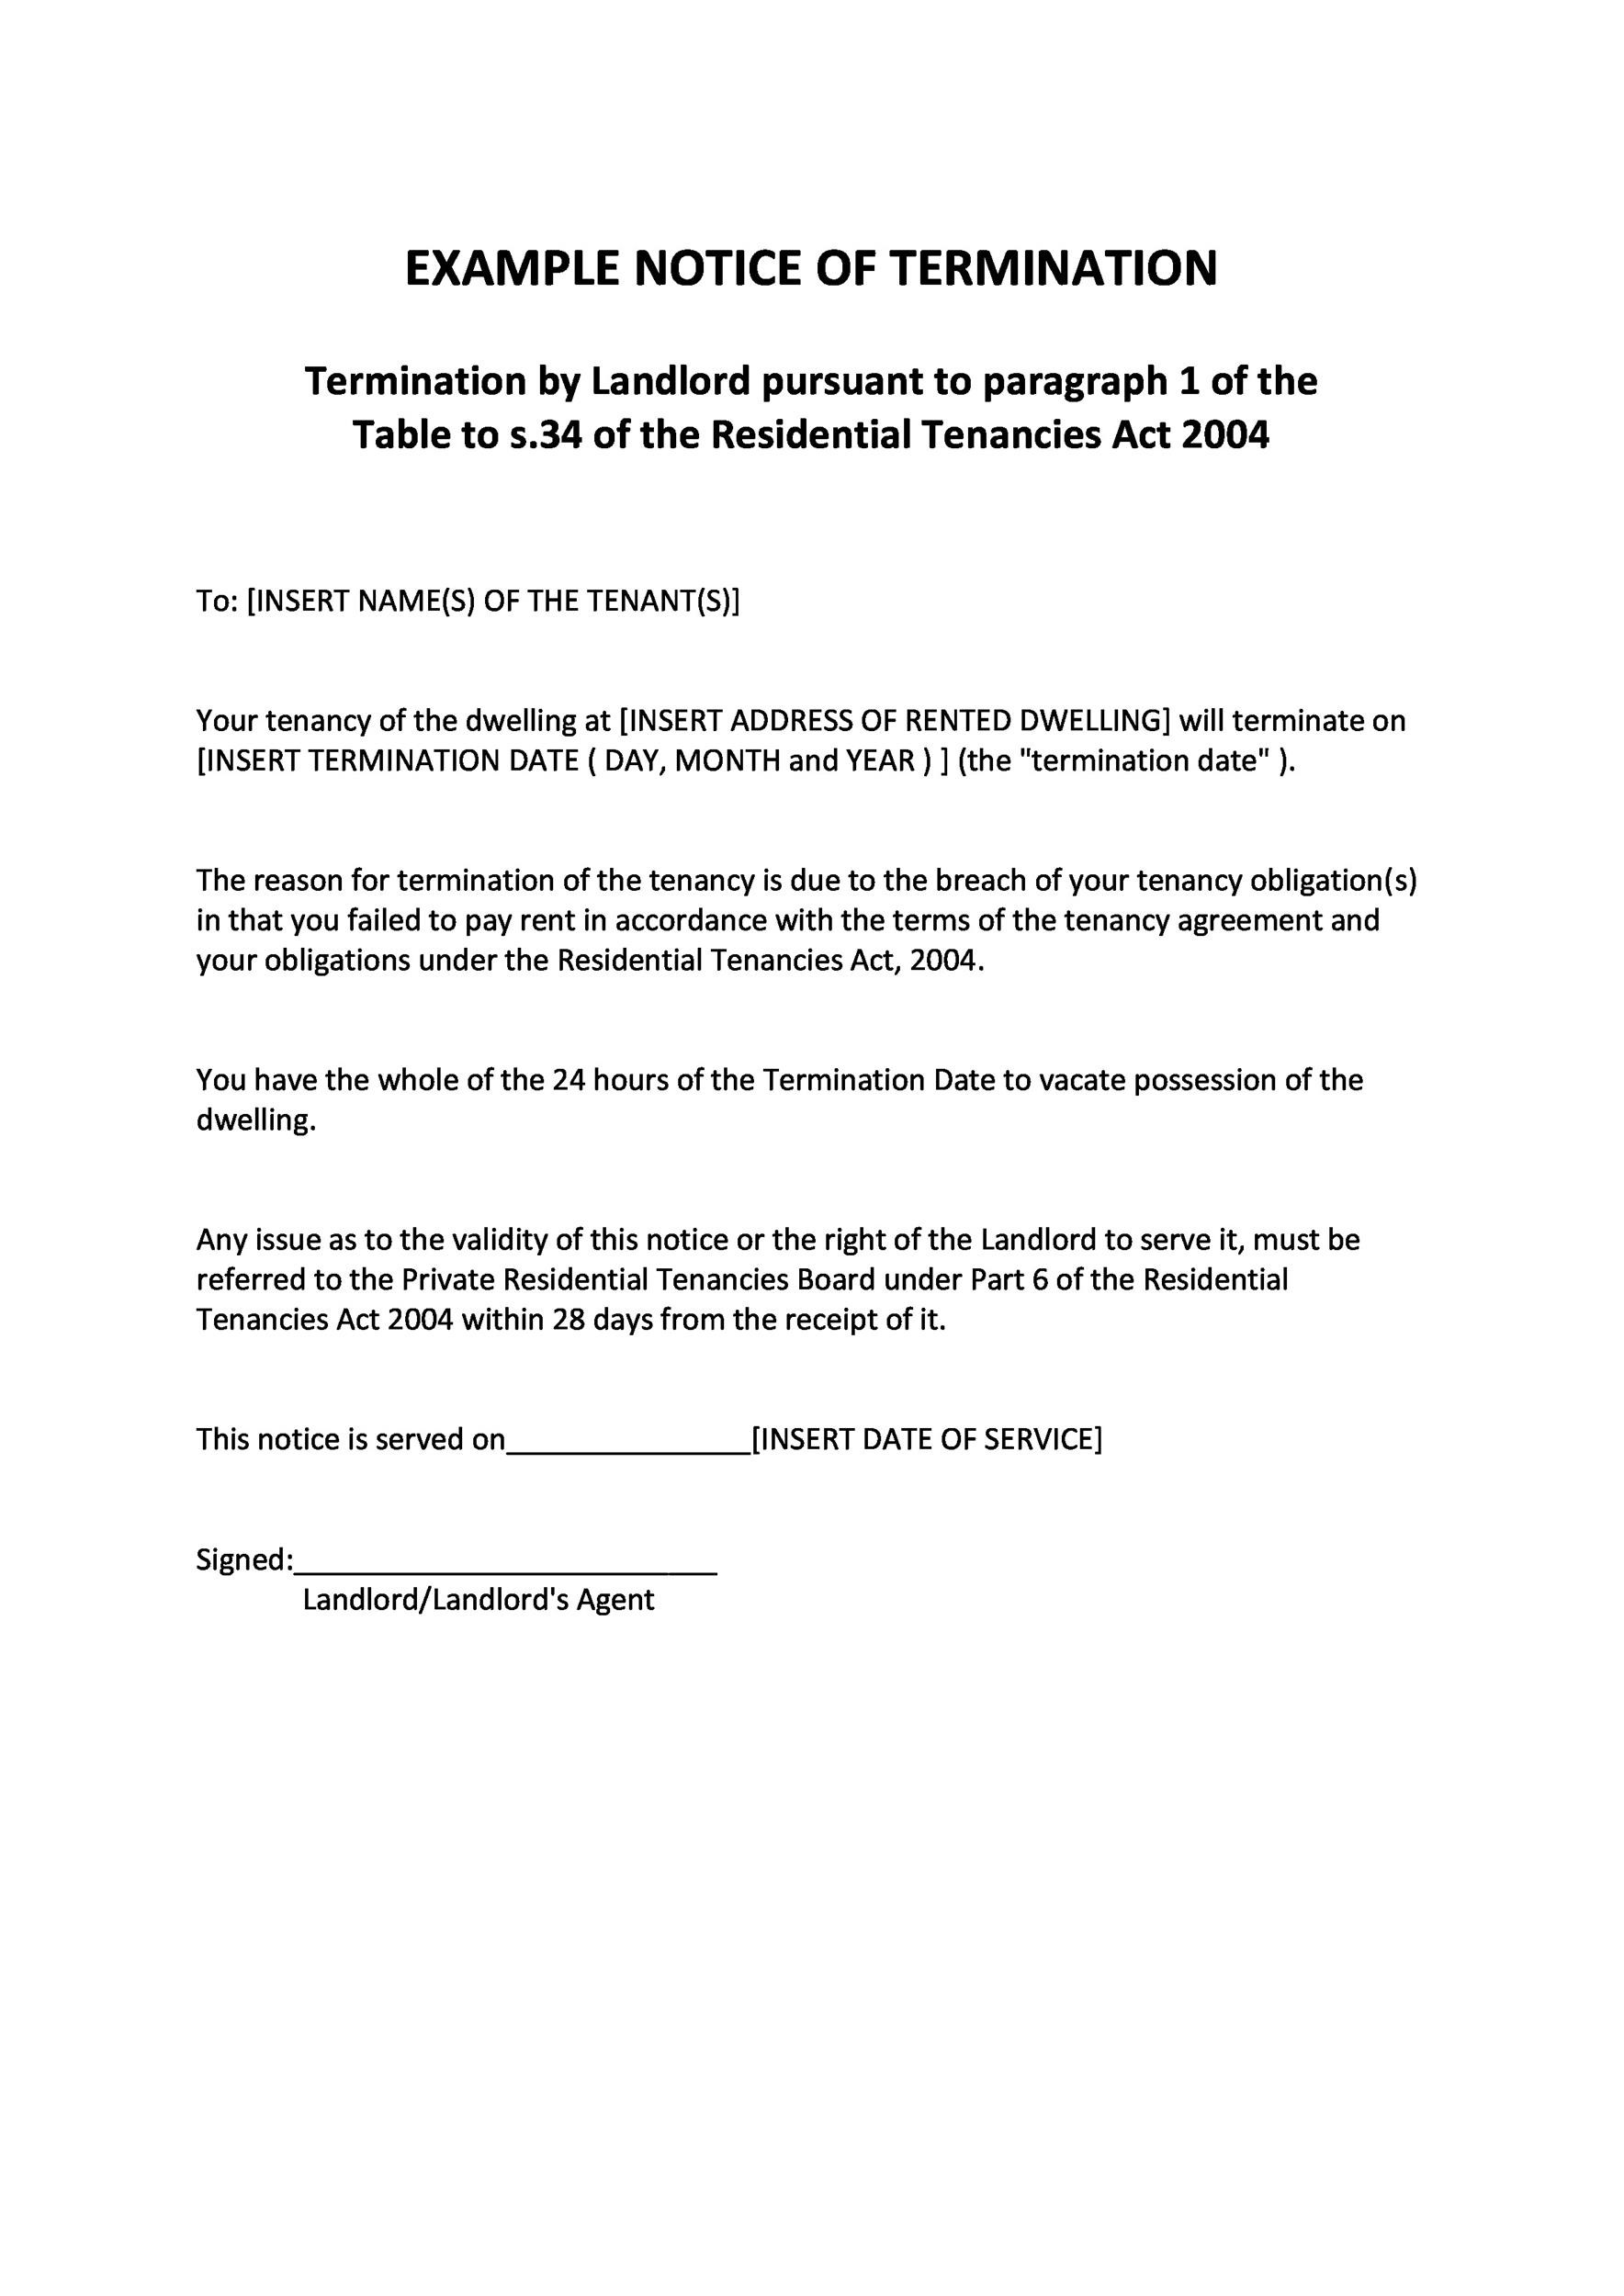 printable example notice of termination - Notice To Terminate Lease Agreement